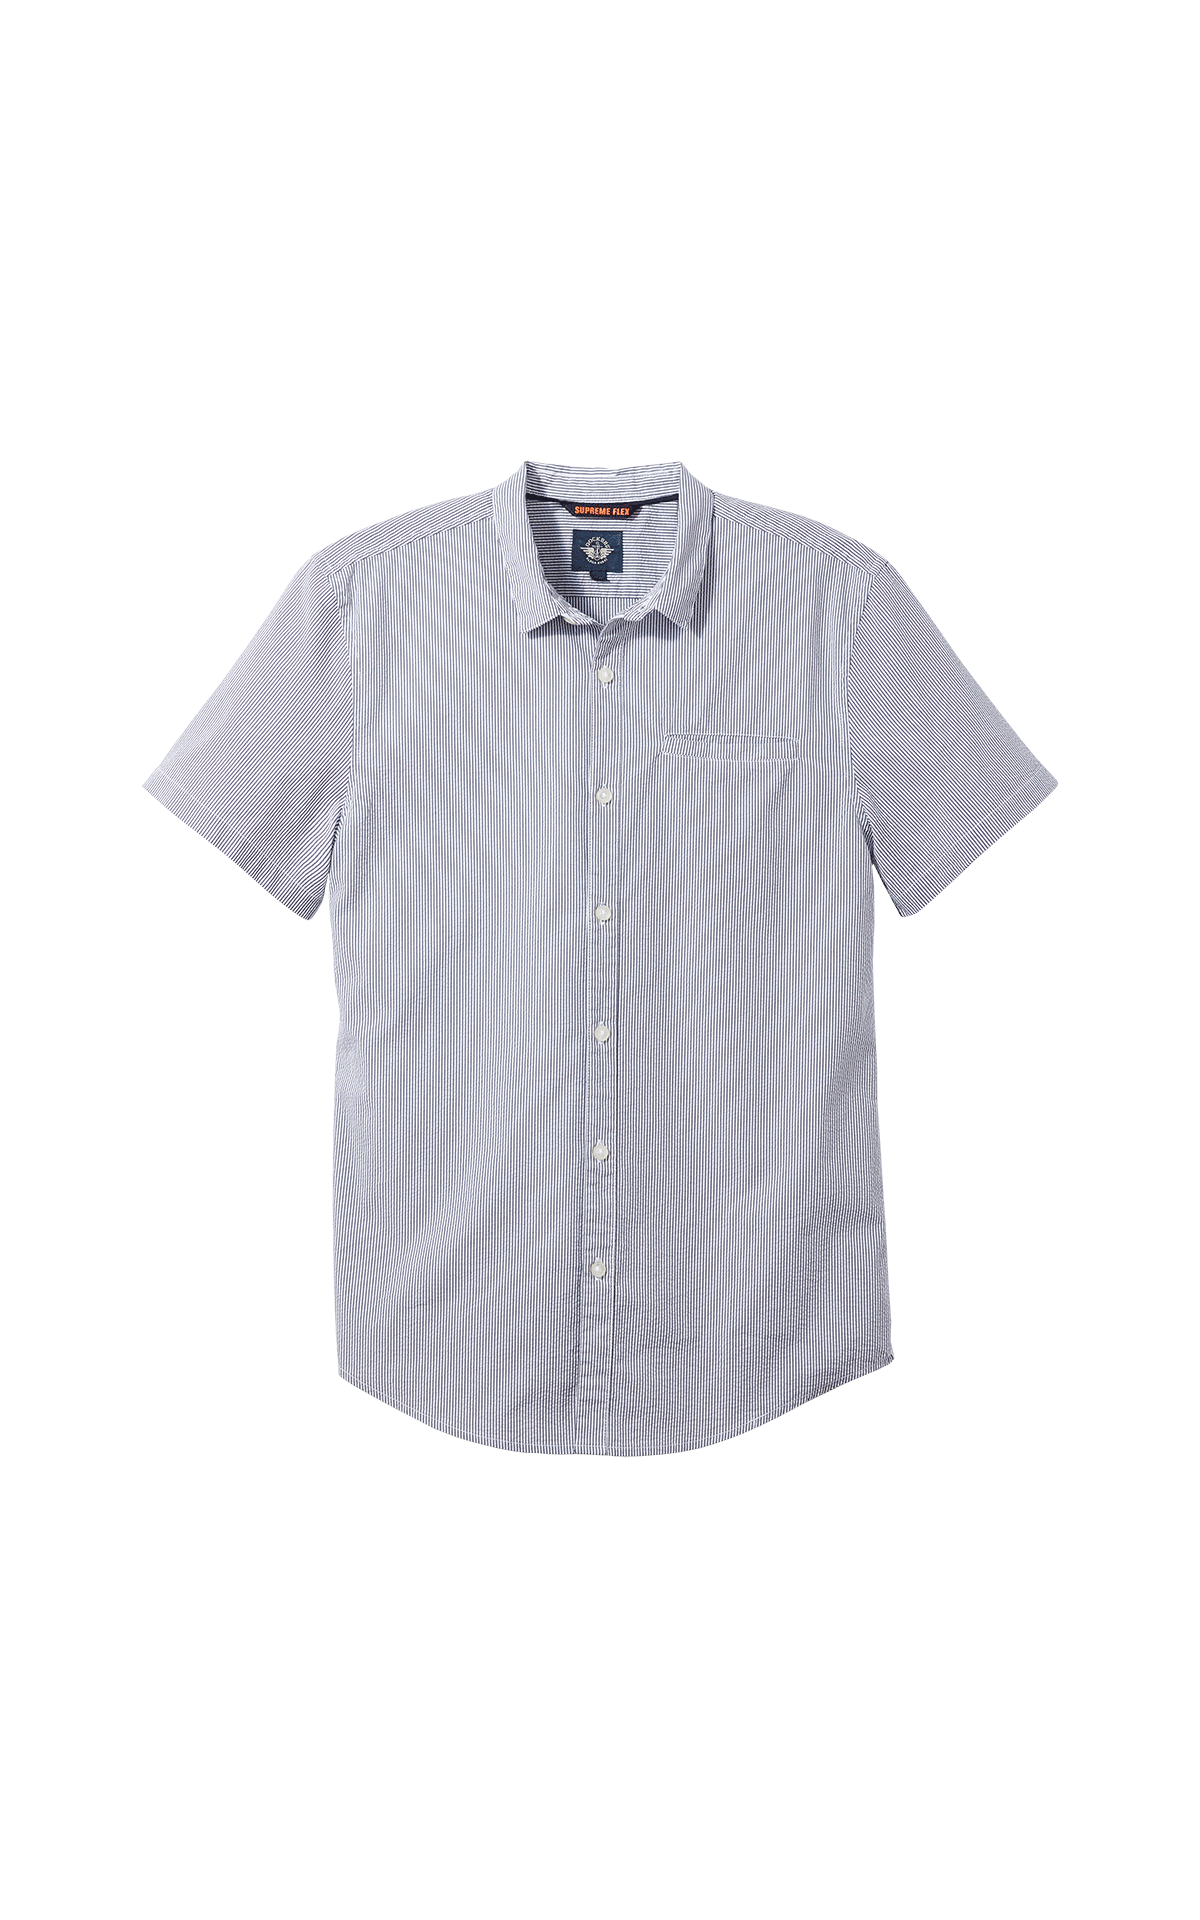 Grey short sleeves striped shirt for man Dockers